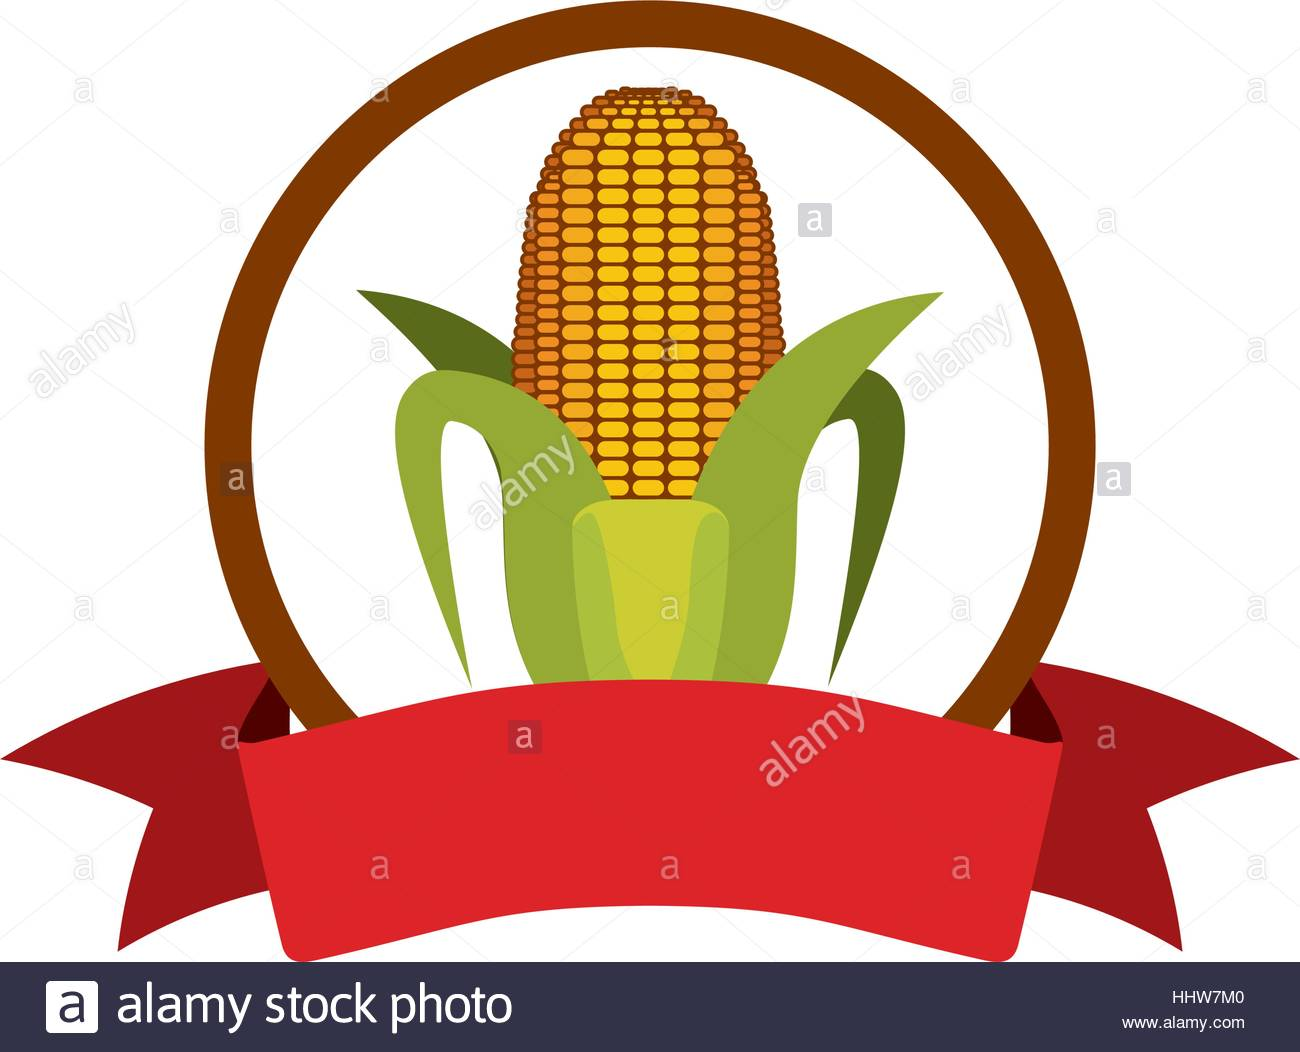 1300x1052 Label Silhouette Colorful With Corn Vector Illustration Stock